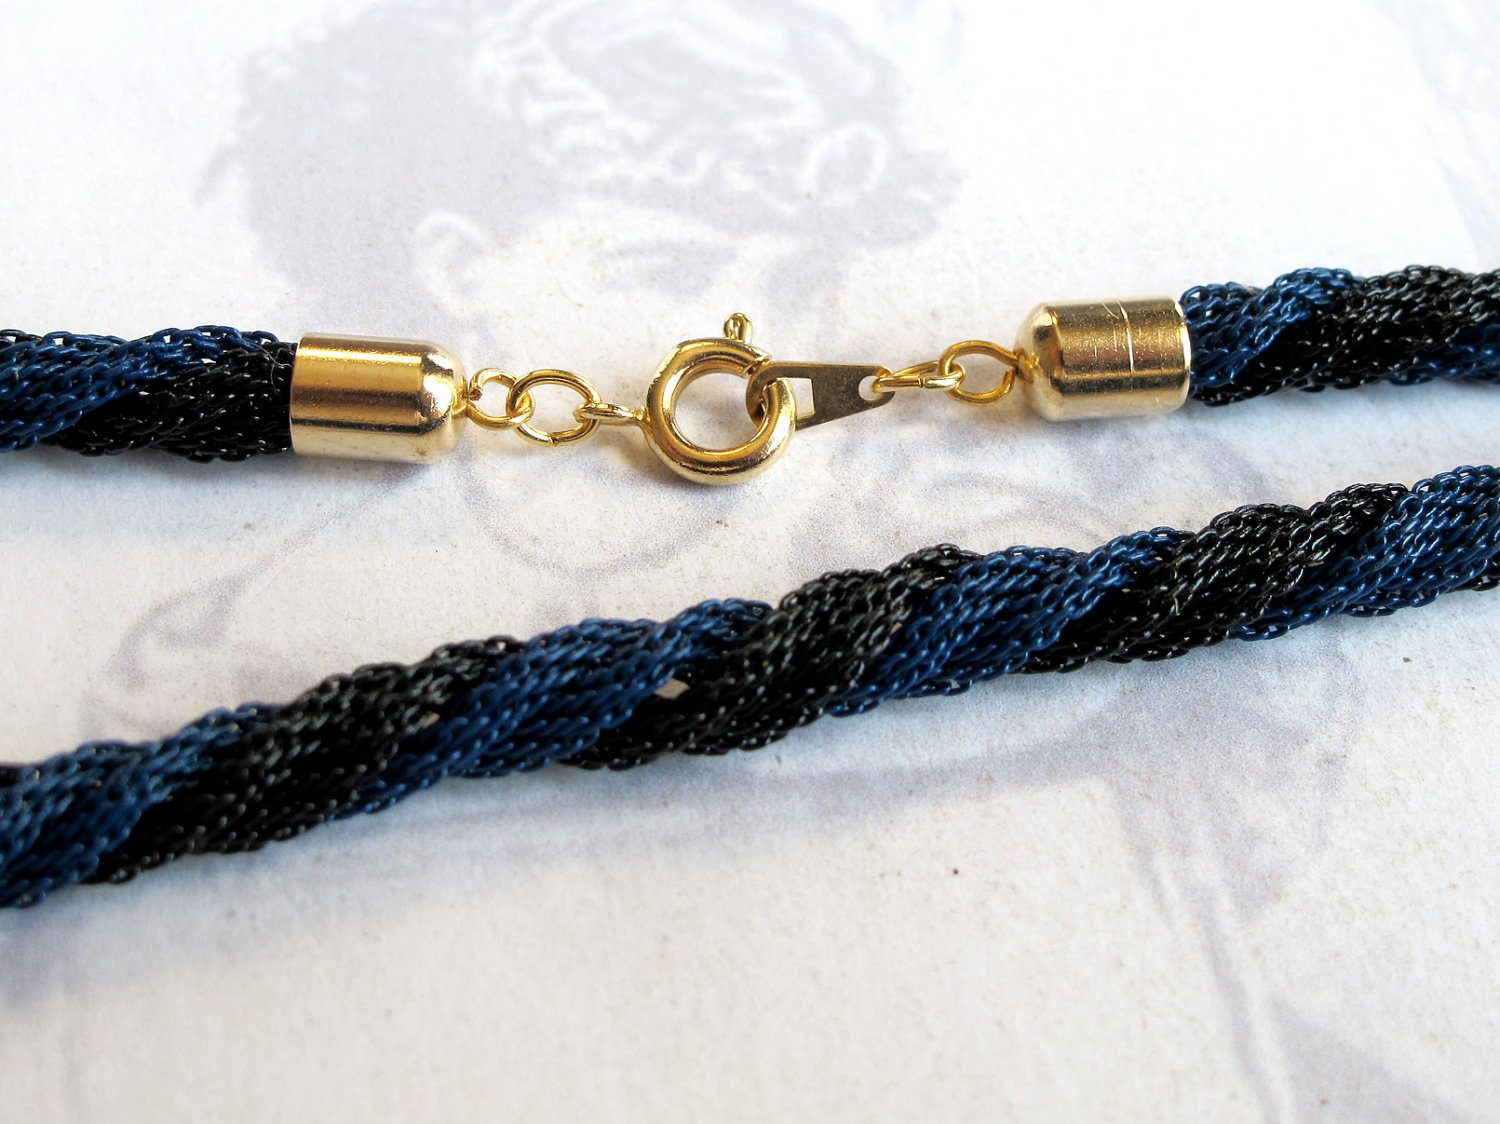 e73eb71f46d Vintage Black And Blue Enamel Twisted Rope Chain Bracelet (7.5 Inches)  (C634)